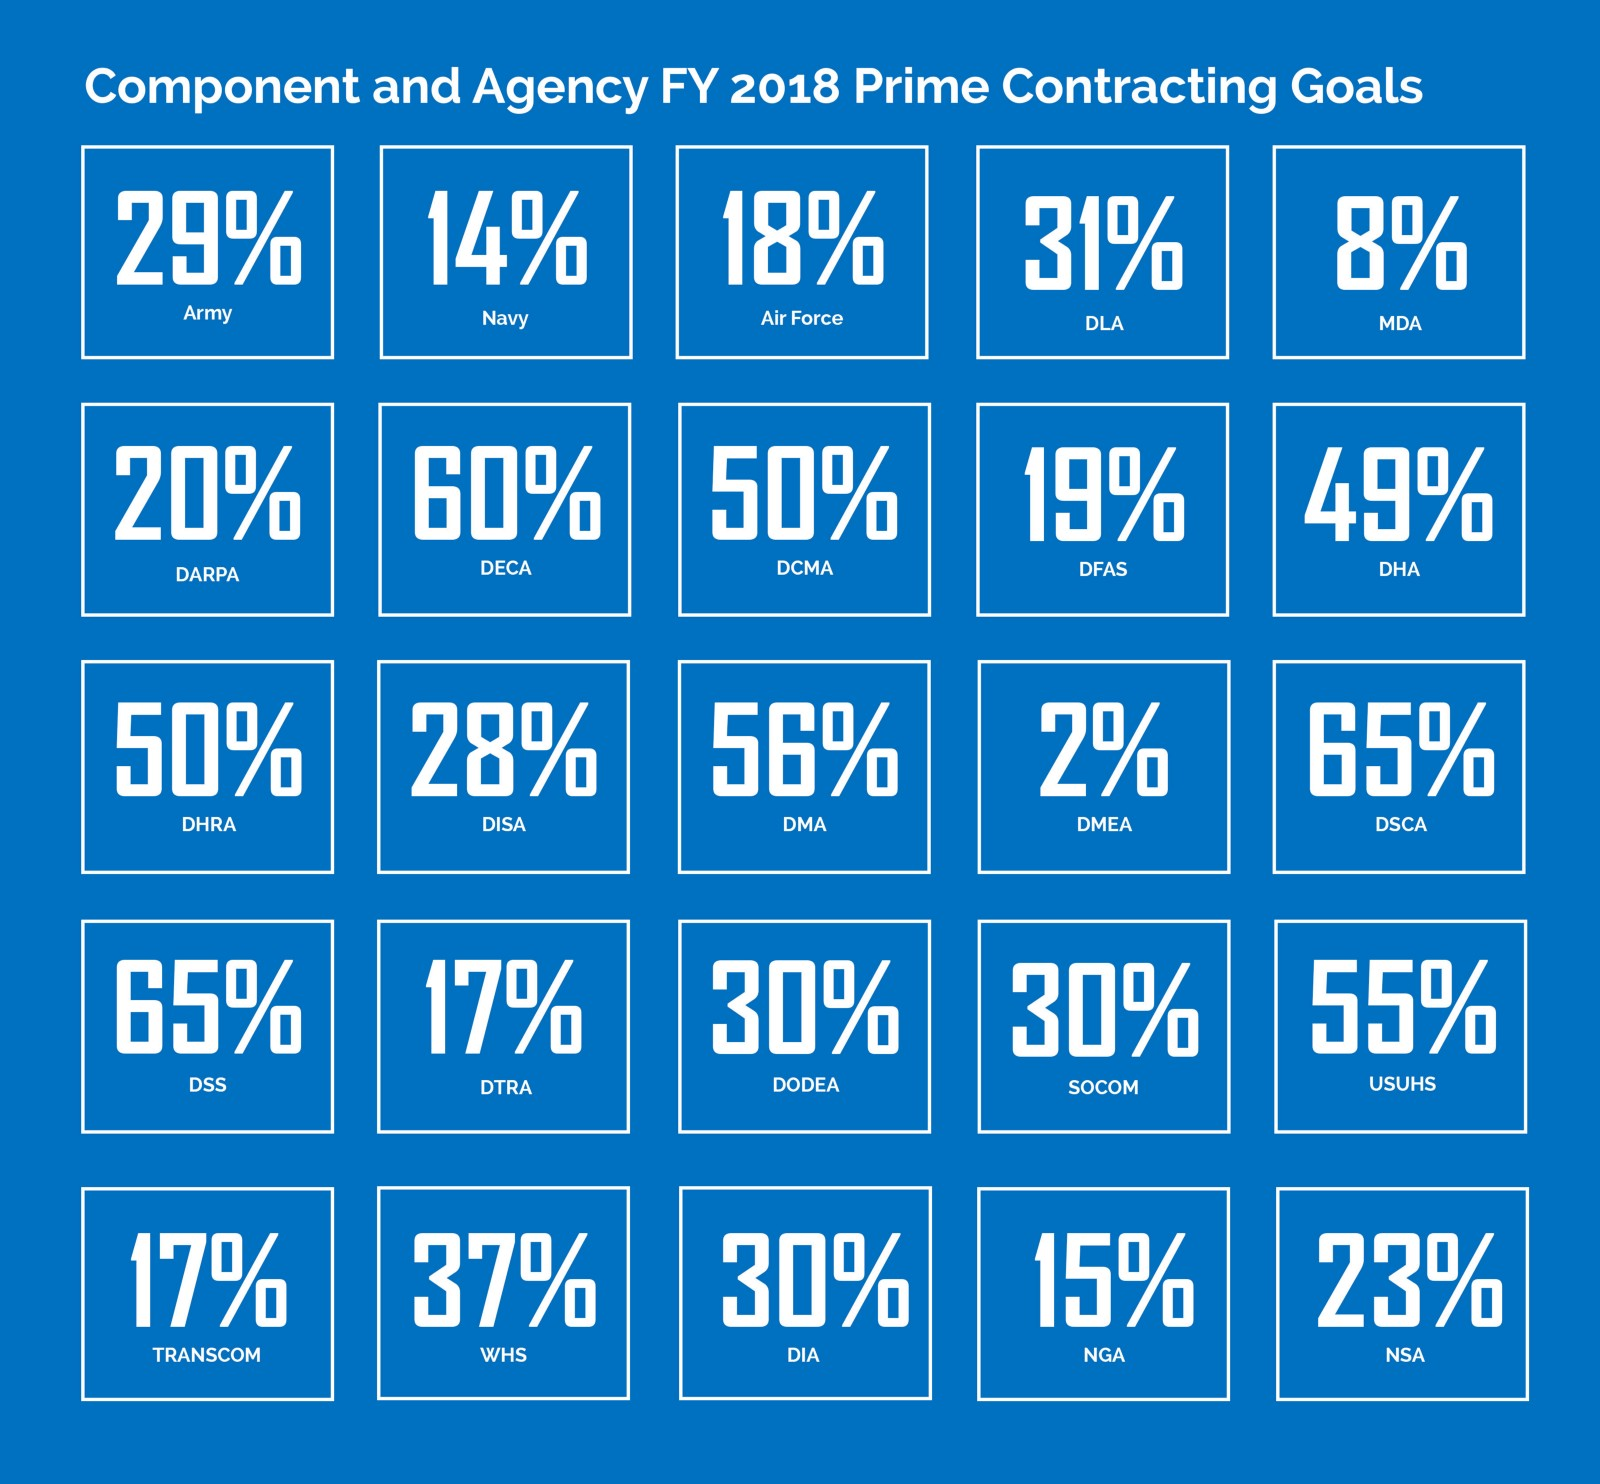 Dod fy 2018 small business goals dod osbp medium some buying commands goals increased while others decreased for example the armys prime contracting goal was 26 percent cheaphphosting Gallery